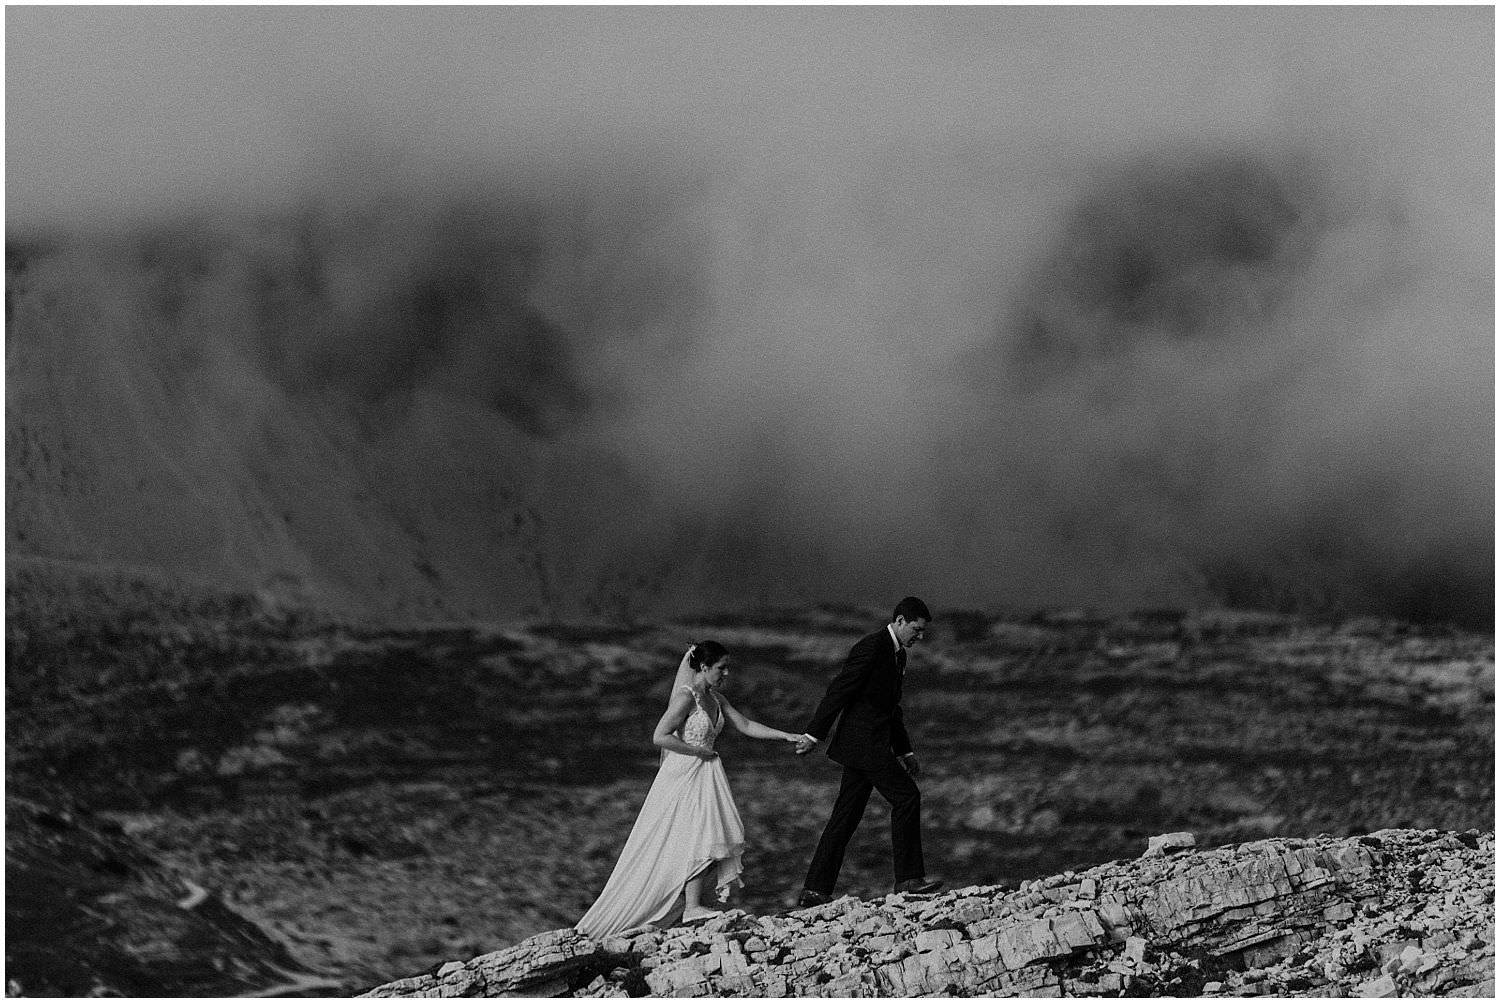 Wedding photo shoot in the mountains